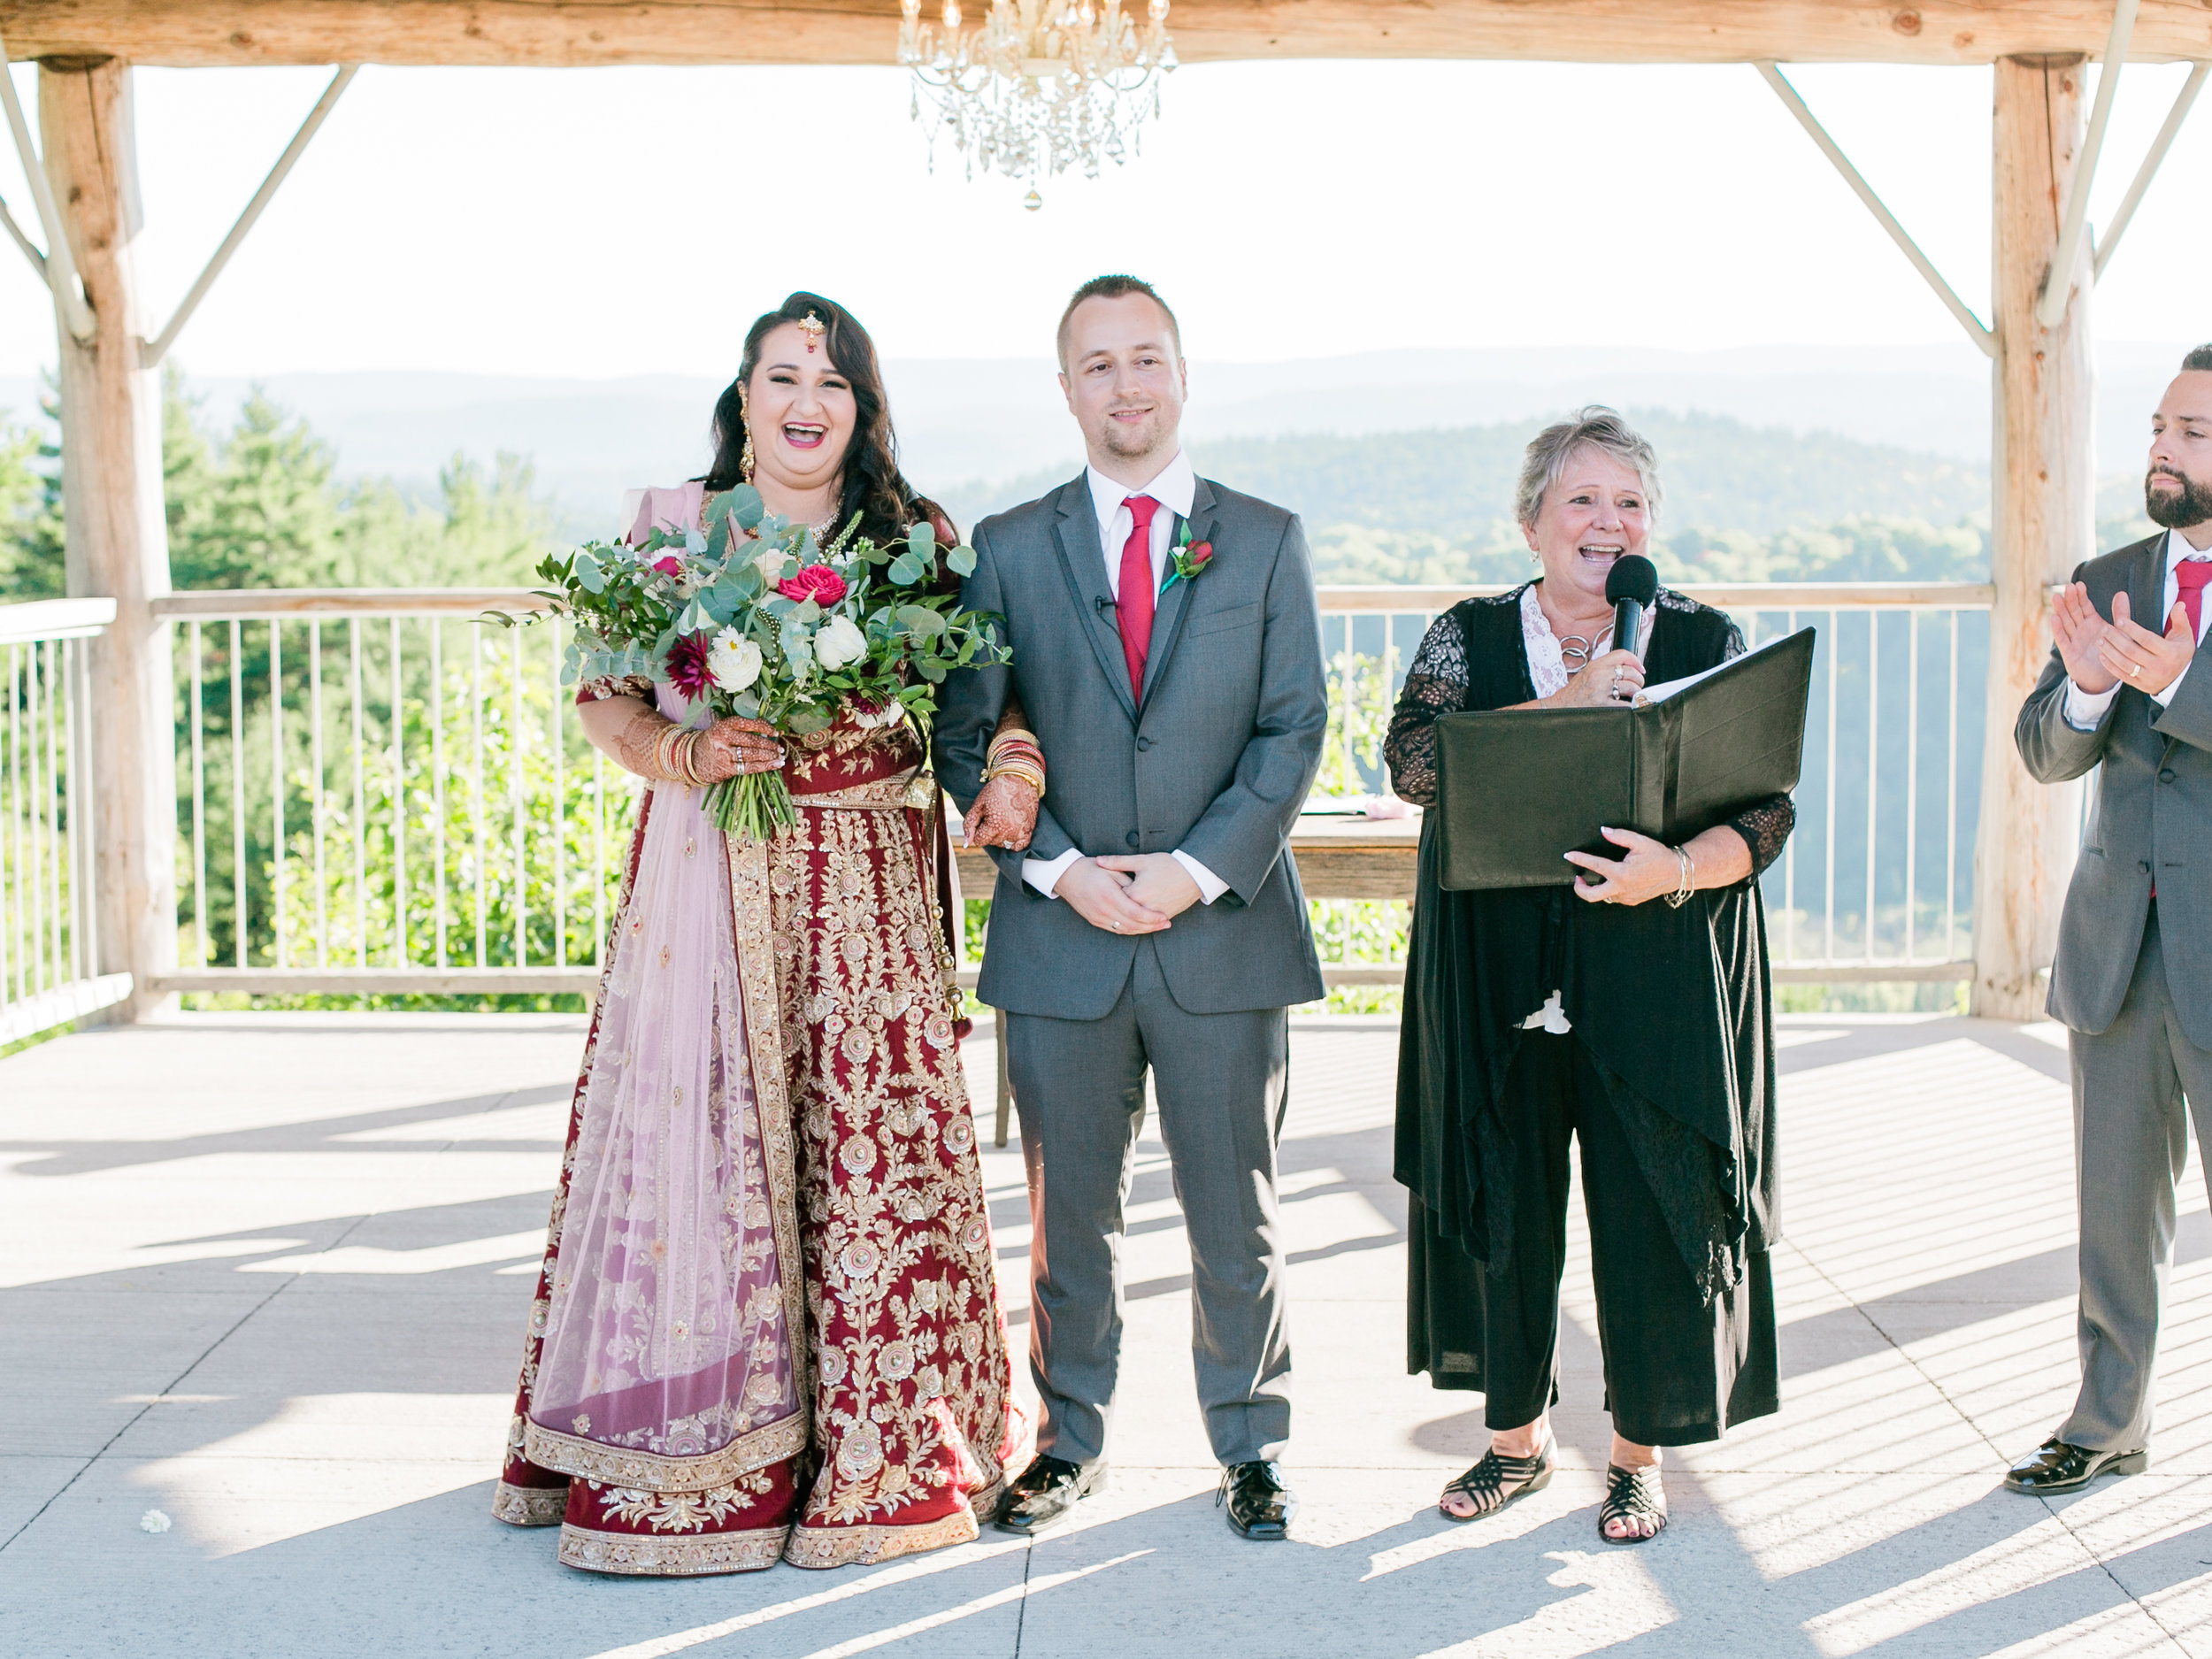 LeBelvedere_MountainTopWedding_StephanieMasonPhotography-176.jpg